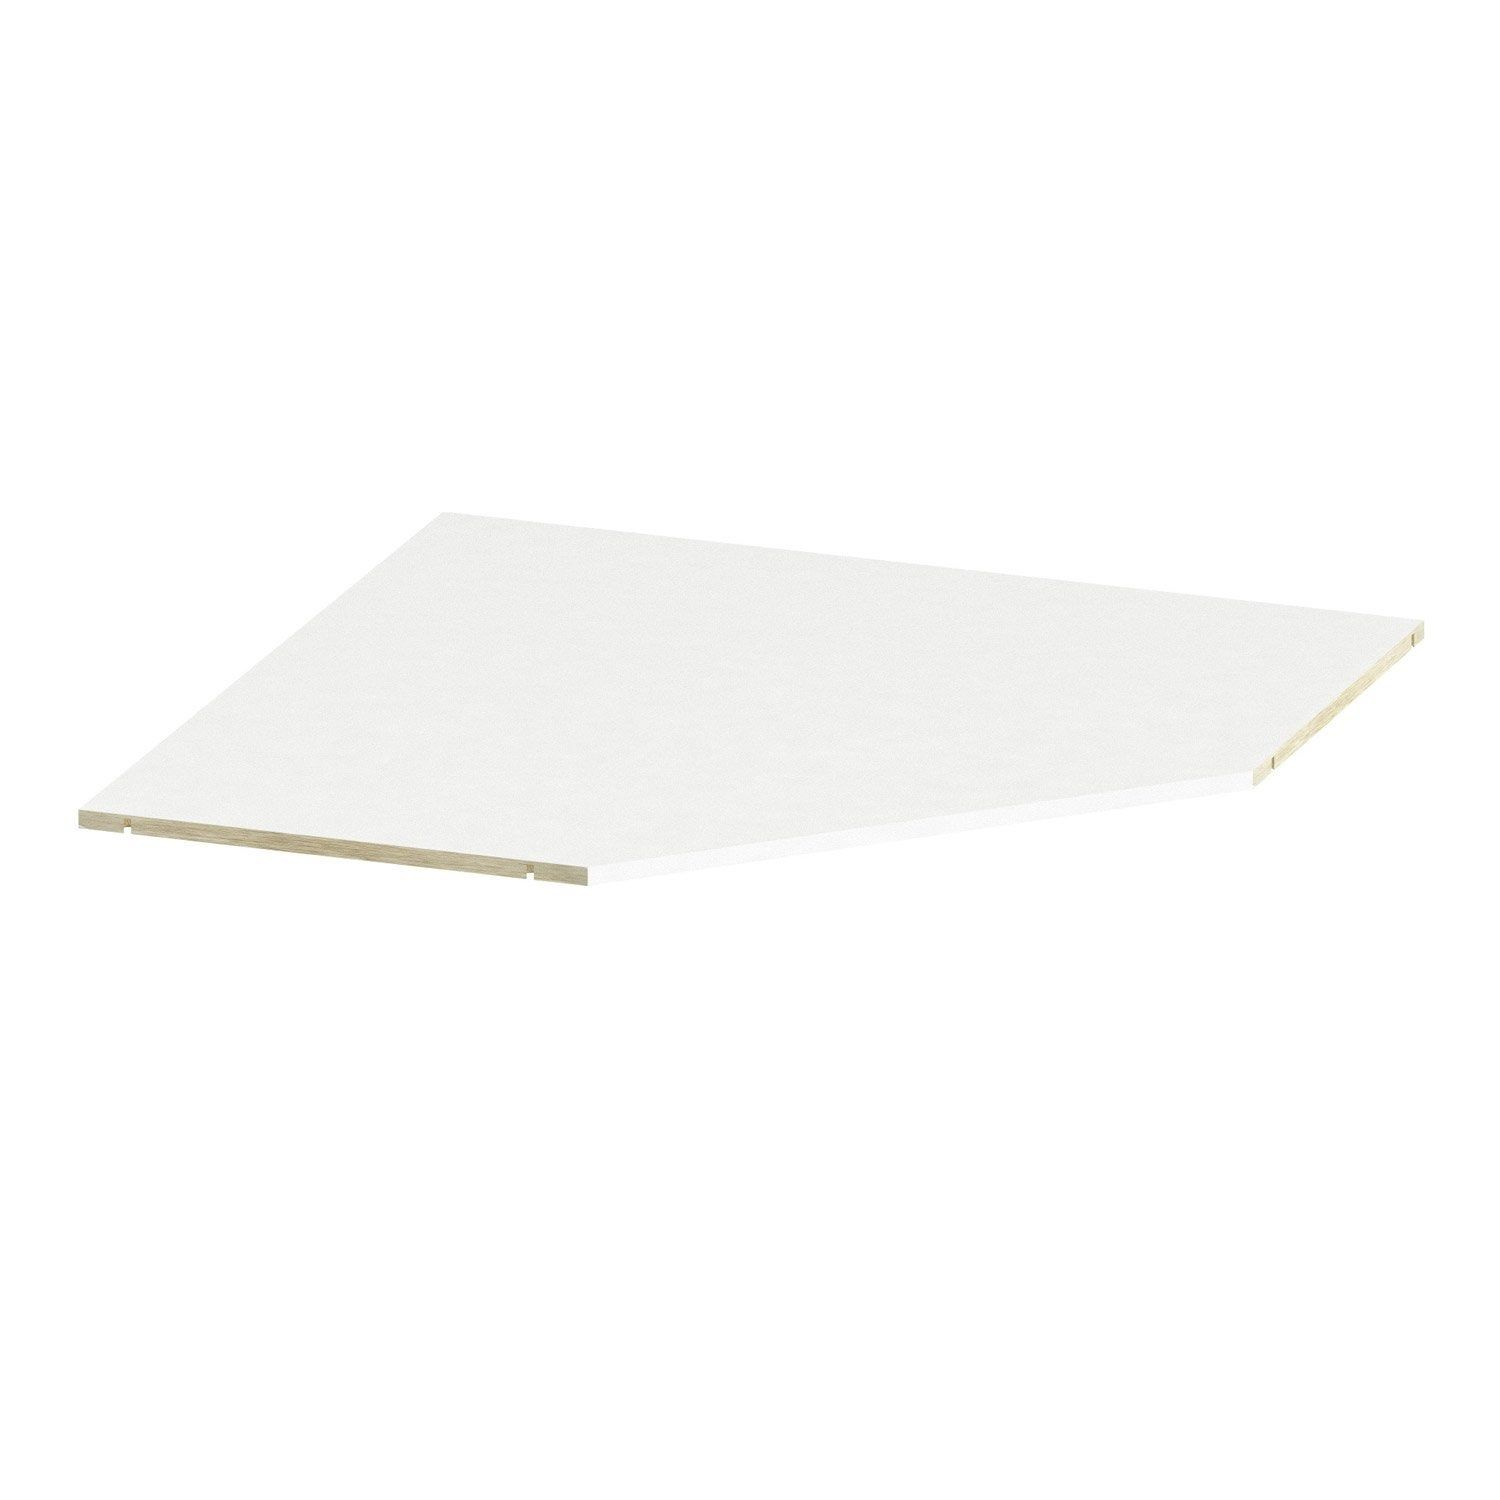 Tablette D Angle Spaceo Home 1 6 X 85 7 X 85 7 Cm Blanc Tablette D Angle Tablette Et Angles